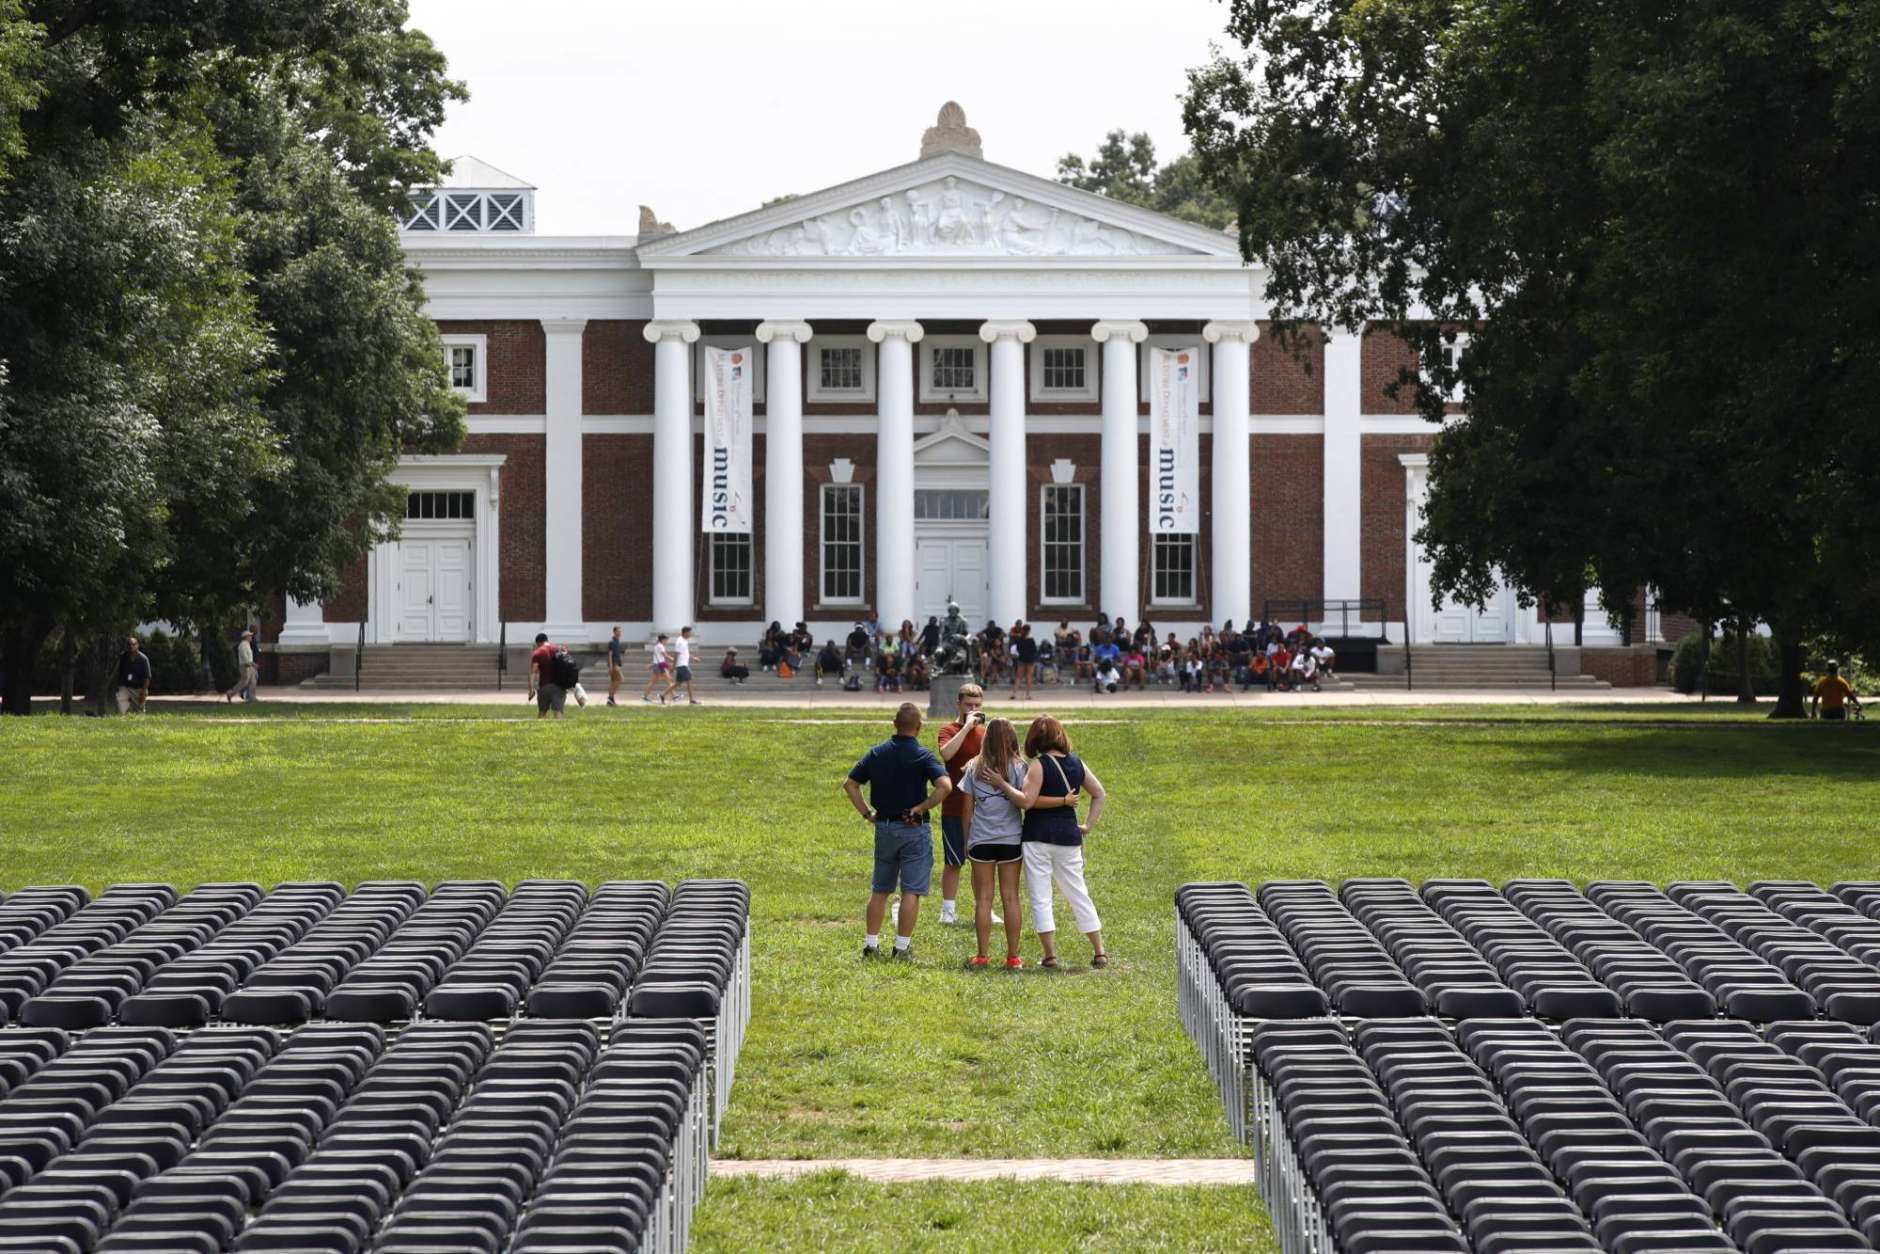 An award-winning author and professor at University of Virginia is the subject of a Title IX investigation. (AP Photo/Jacquelyn Martin)